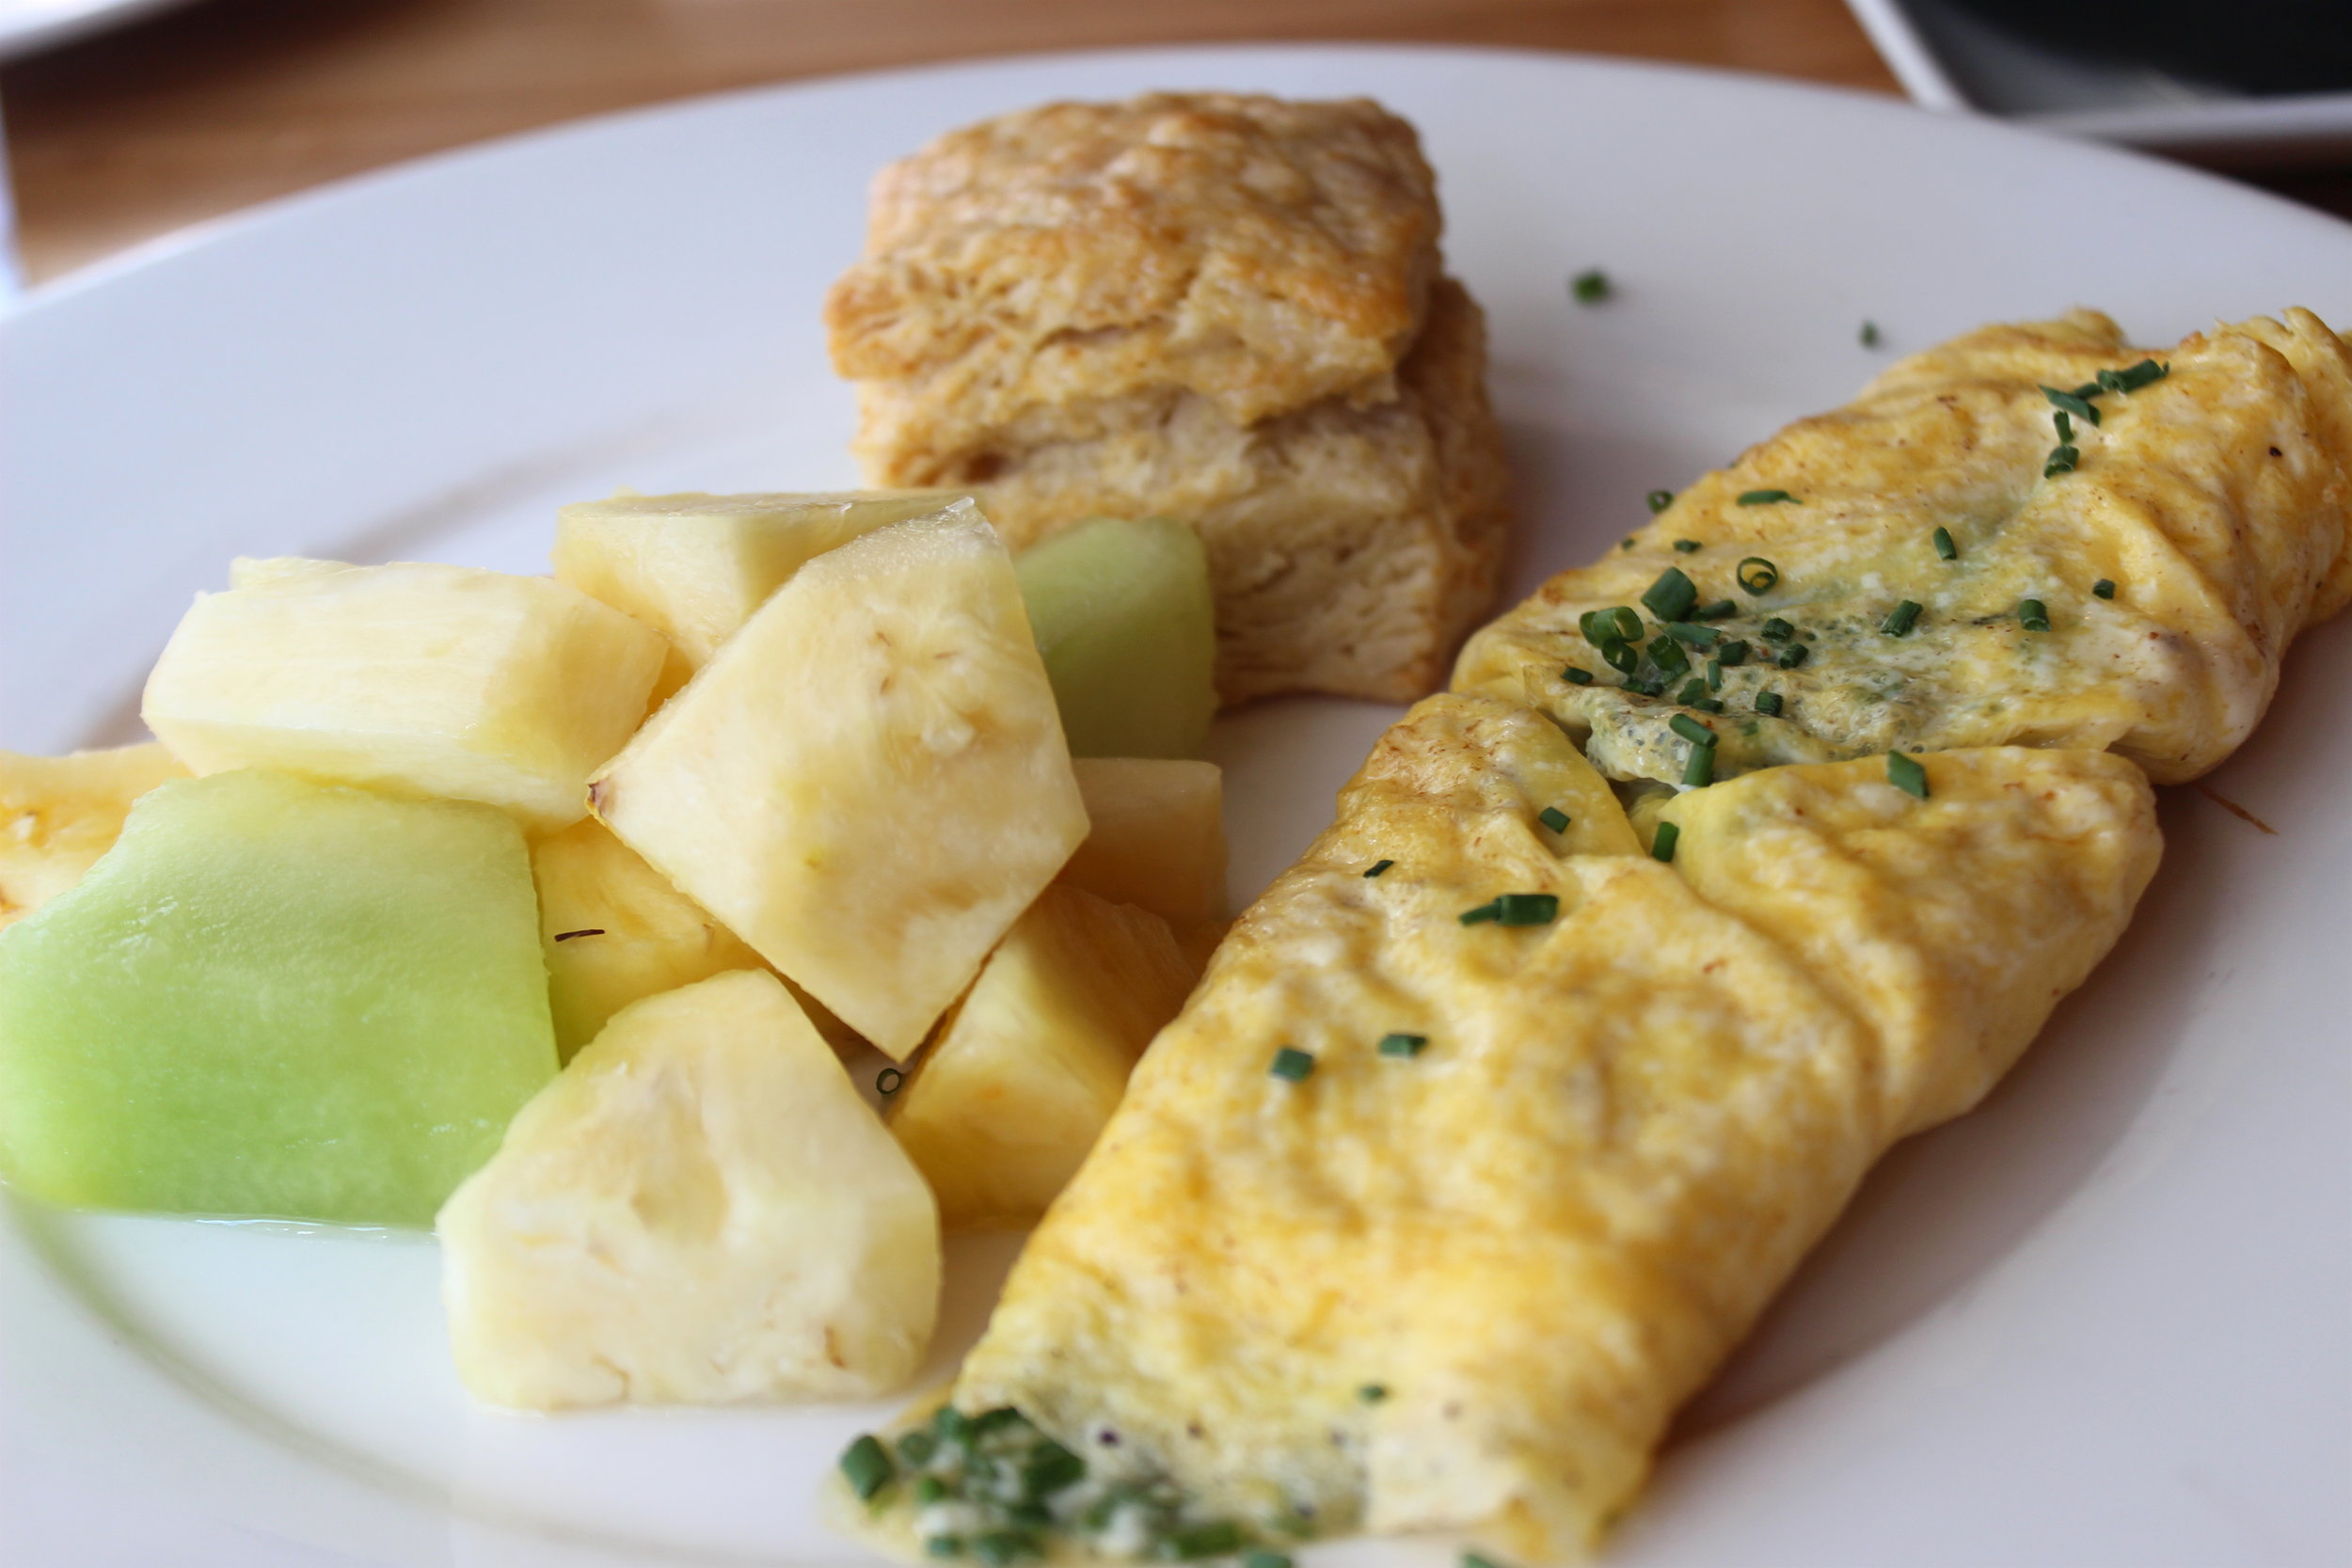 Omelet with Farm Fresh Eggs, Seasonal Fruit, House-made Buttermilk Biscuit